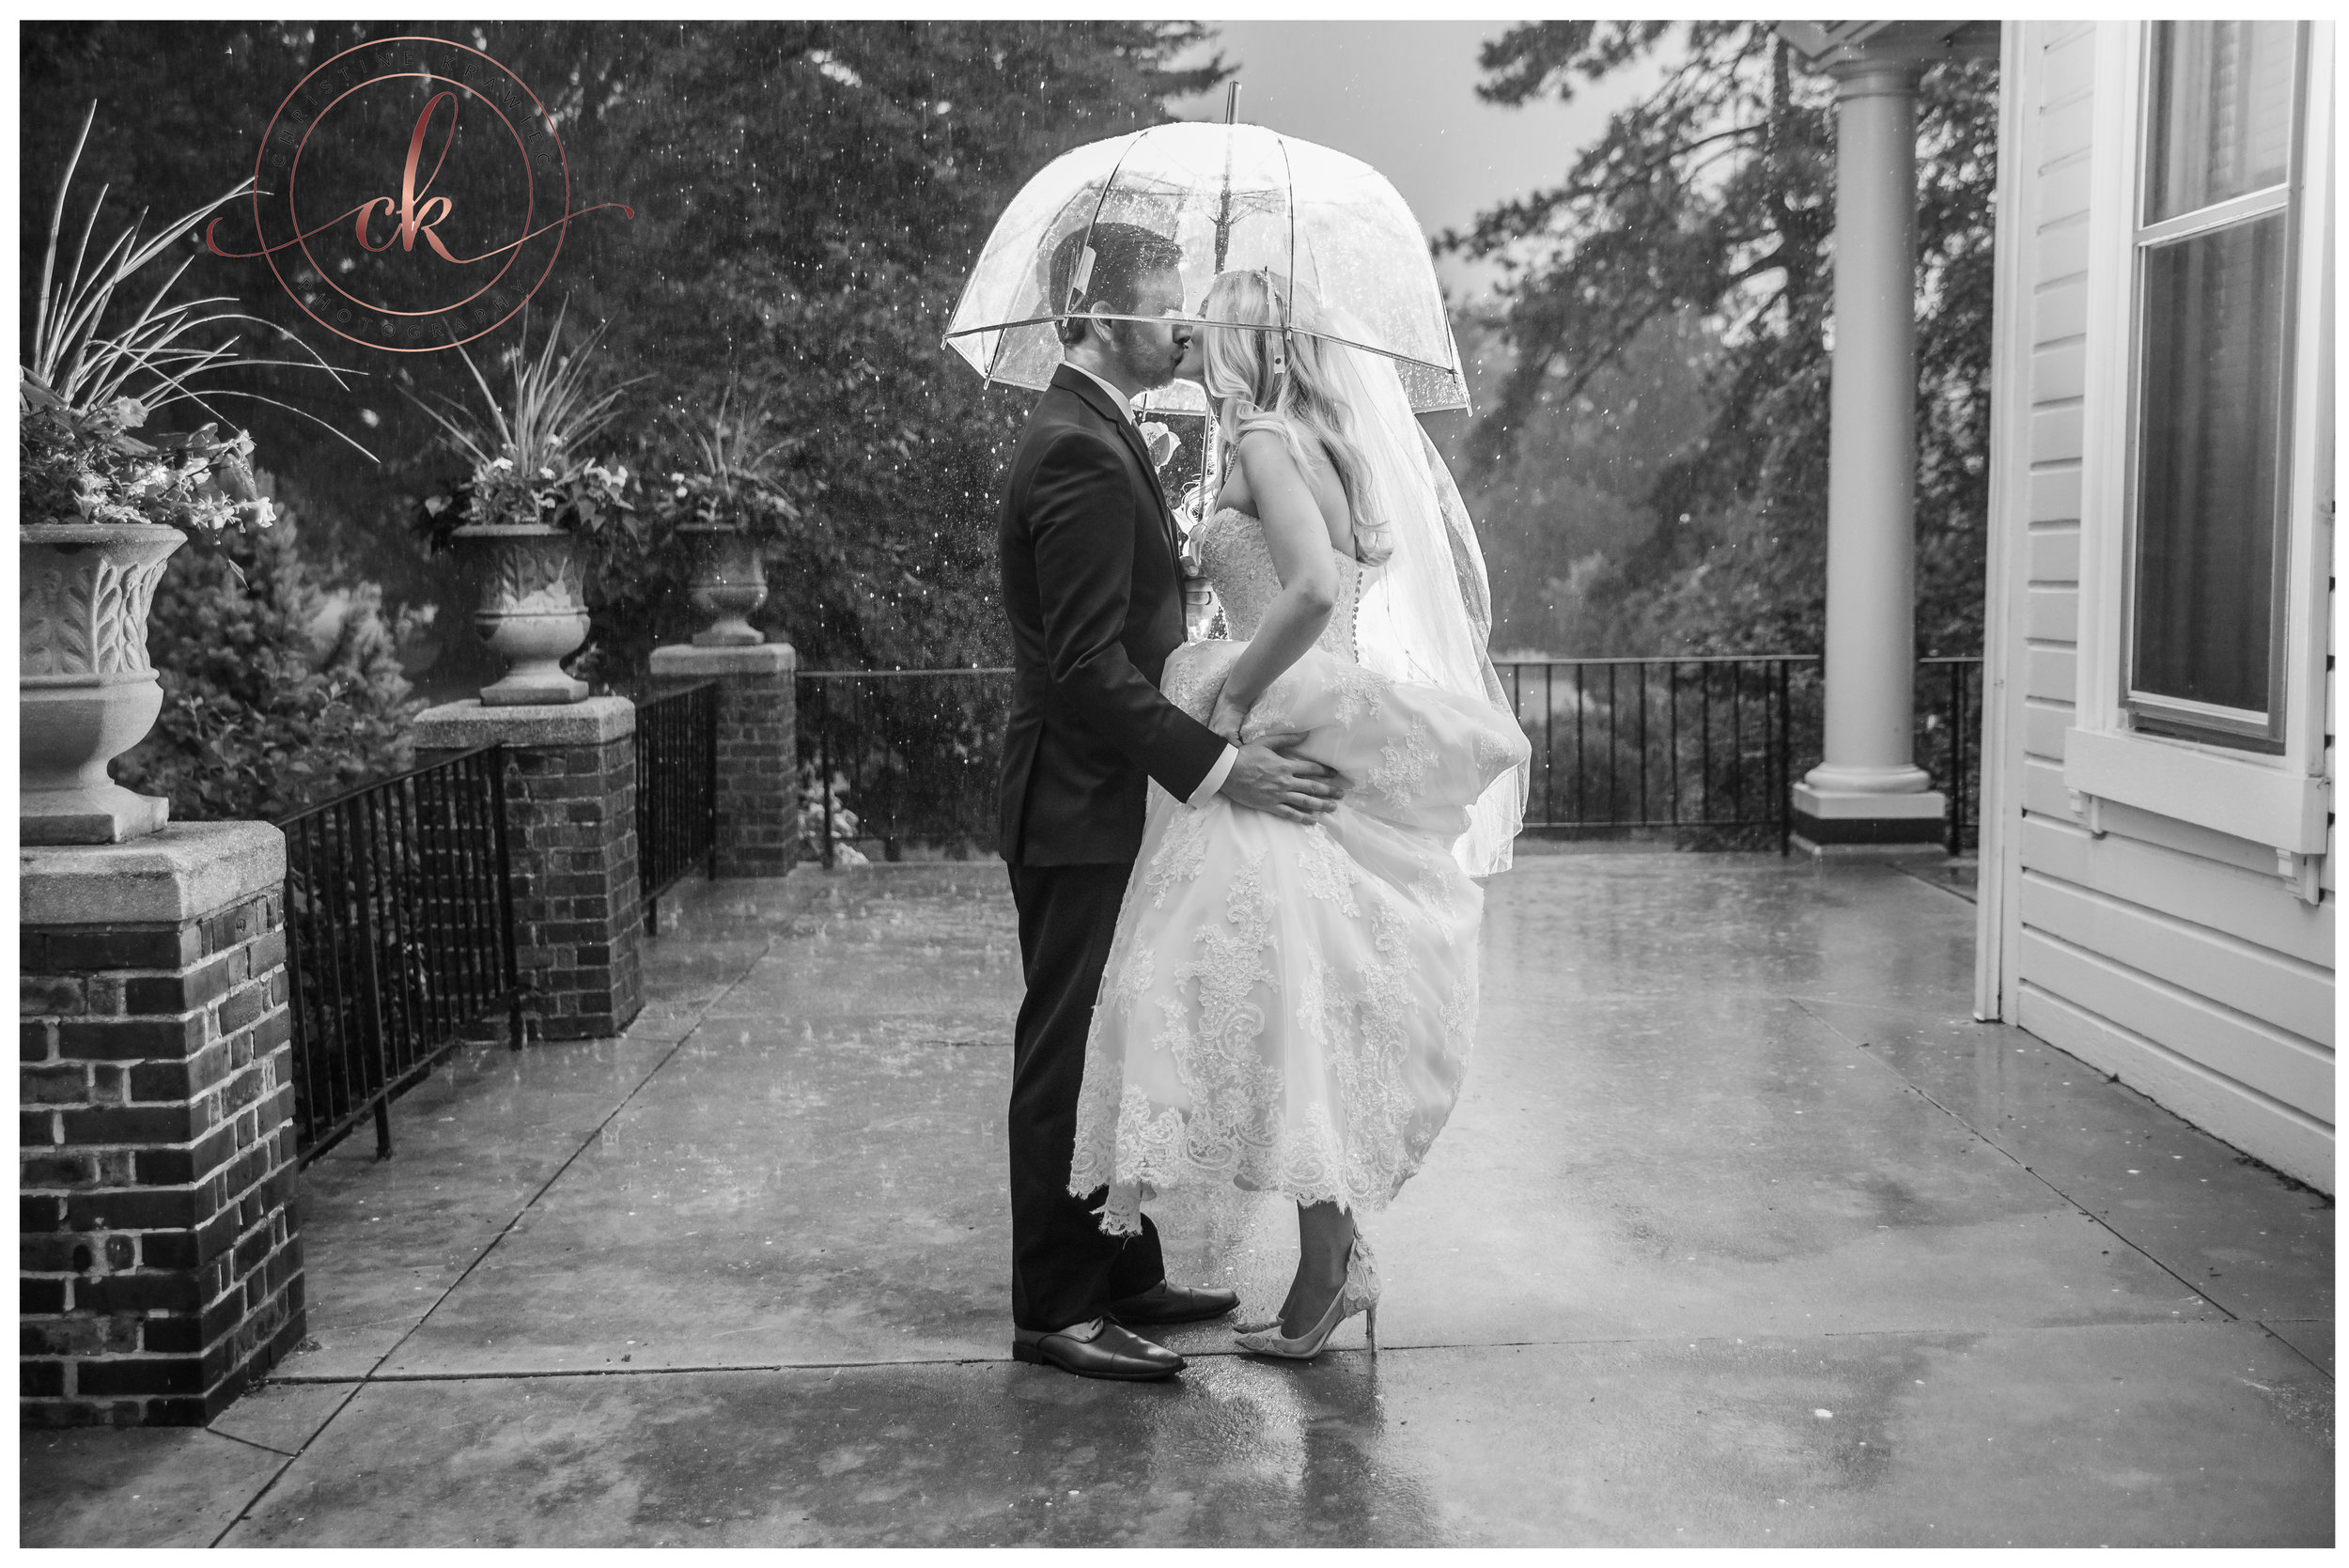 36 collingswood_wedding_rain_umbrella.jpg